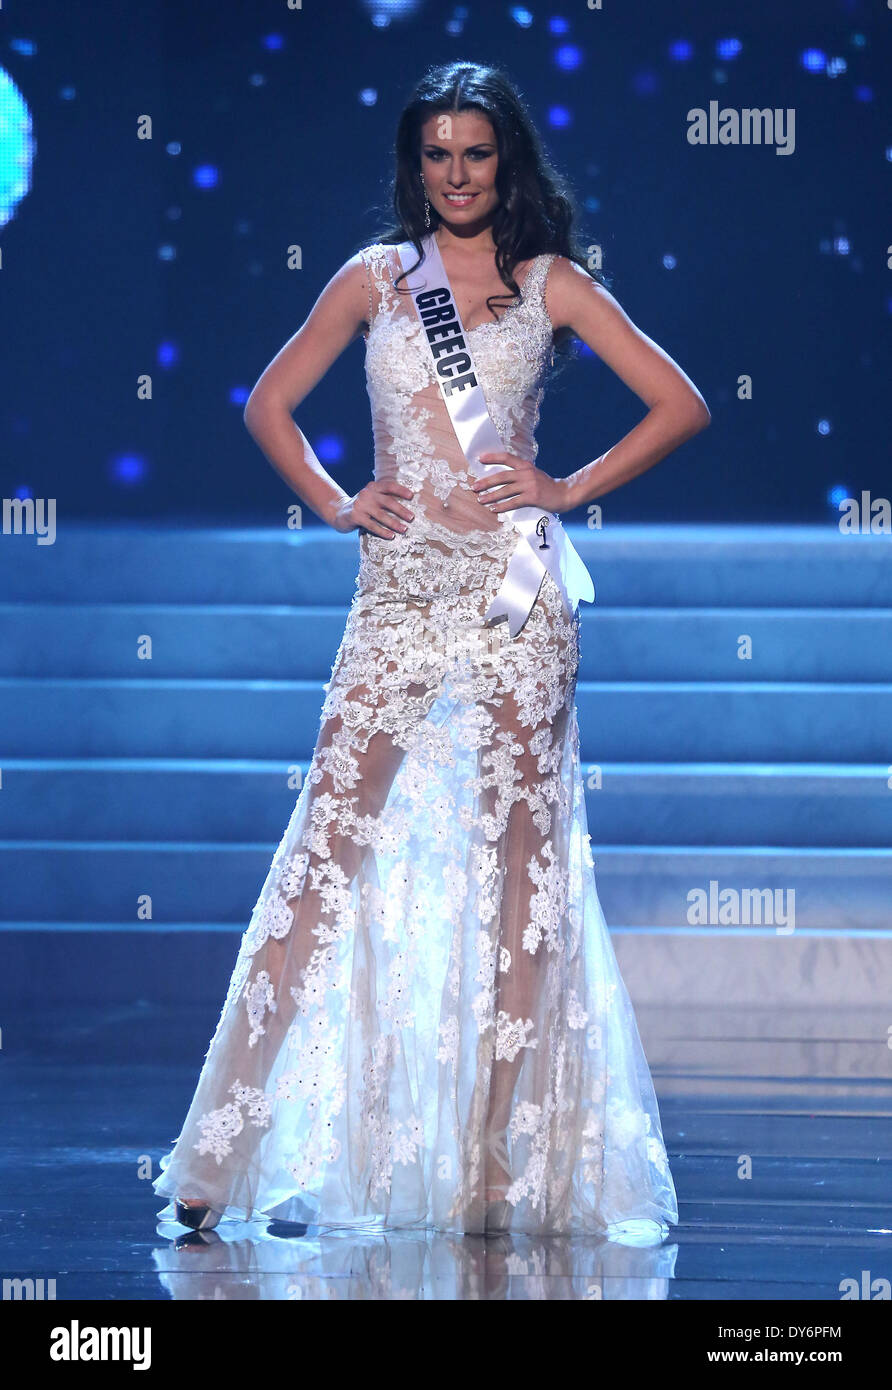 Miss Universe Pageant Stock Photos & Miss Universe Pageant Stock